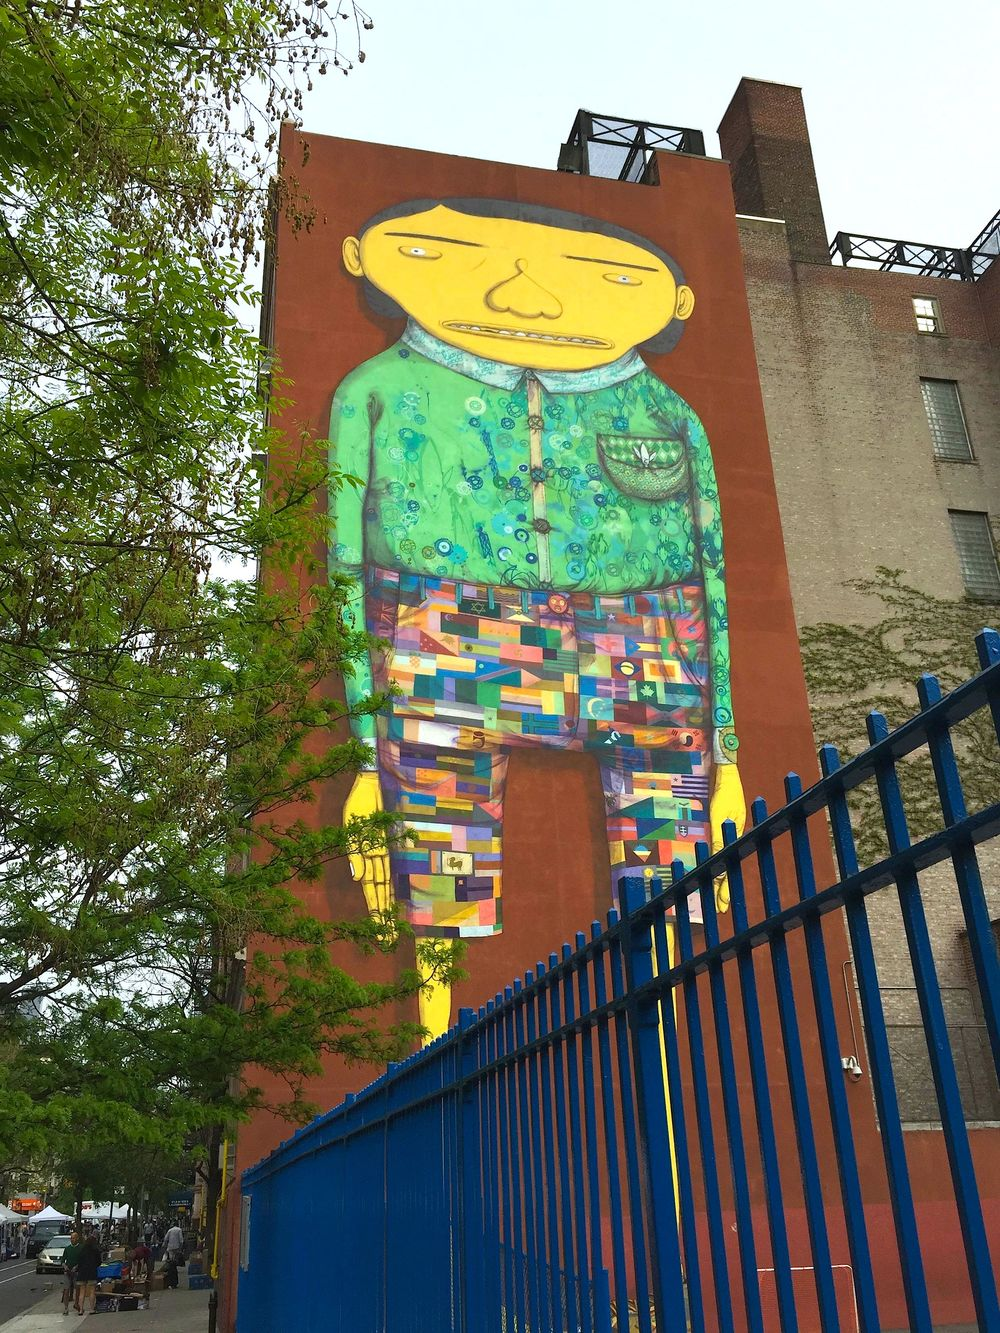 Os Gemeos and Futura 2000, P.S. 11,  320 West 21st Street, NYC